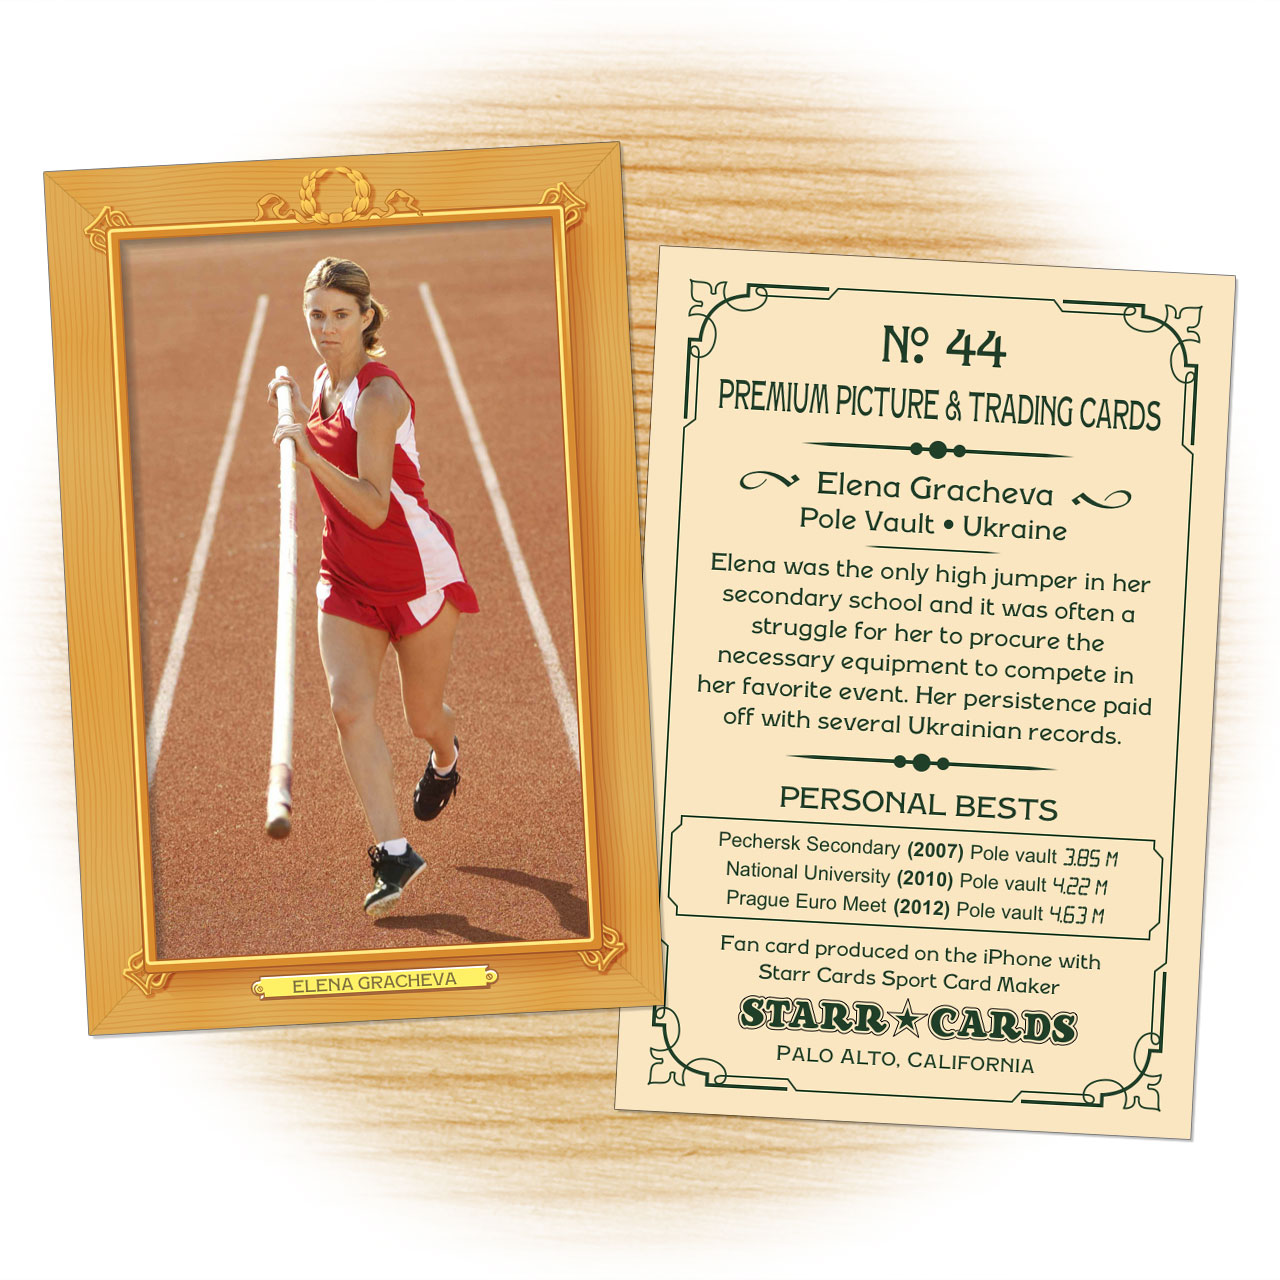 Track and field card template from Starr Cards Track and Field Card Maker.